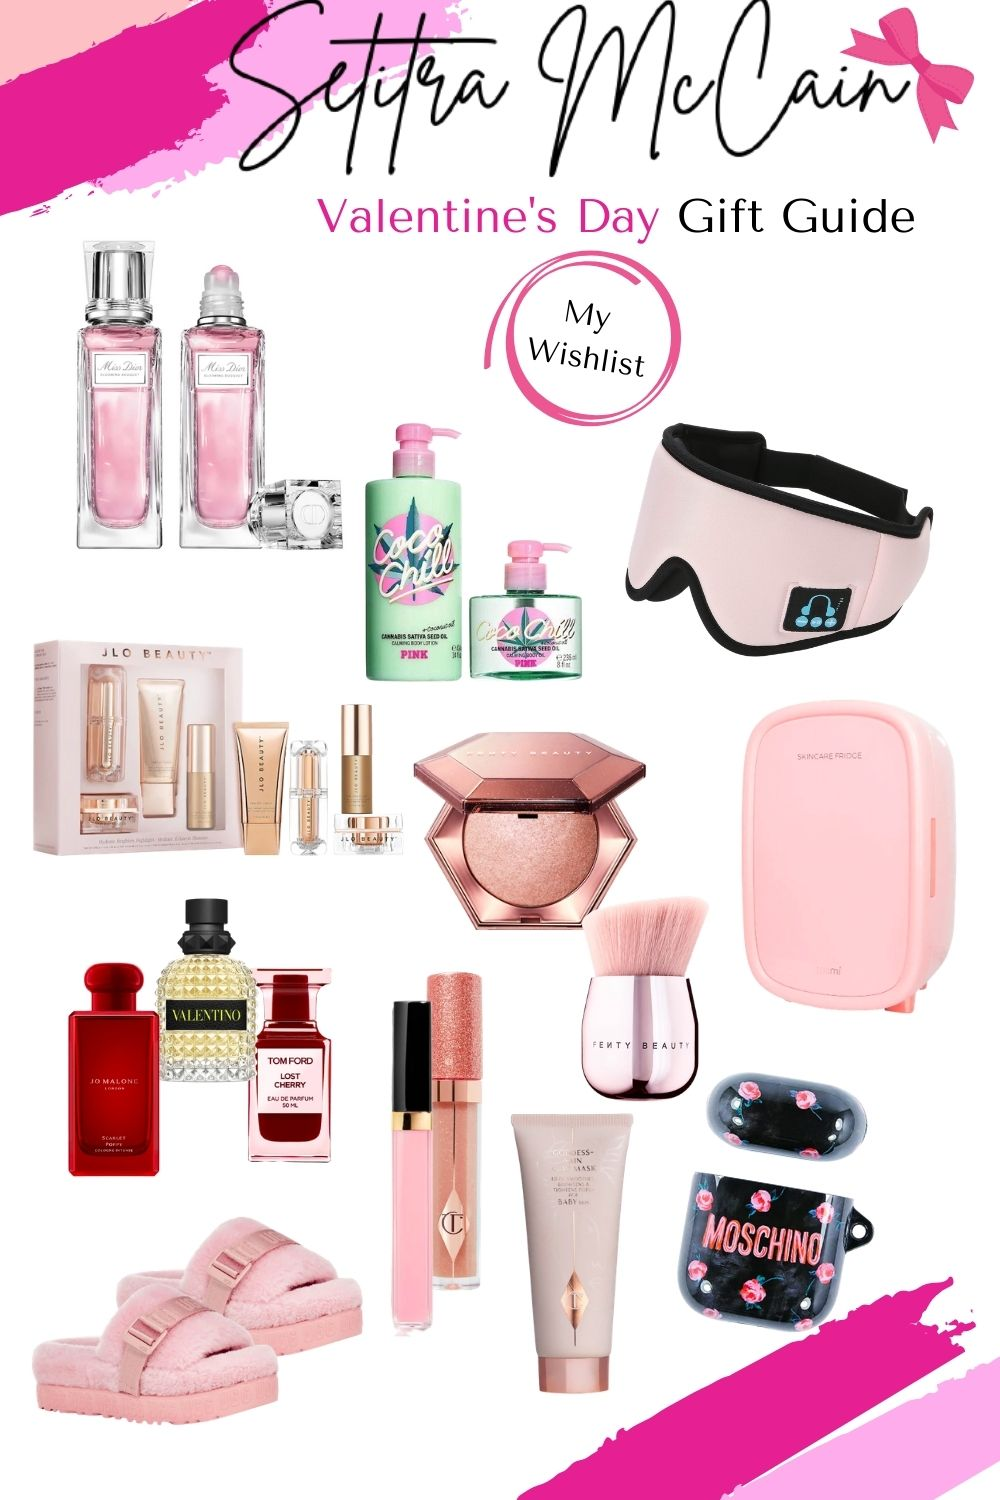 Valentine's Gift Guide for Her from Amazon Prime, Beauty products